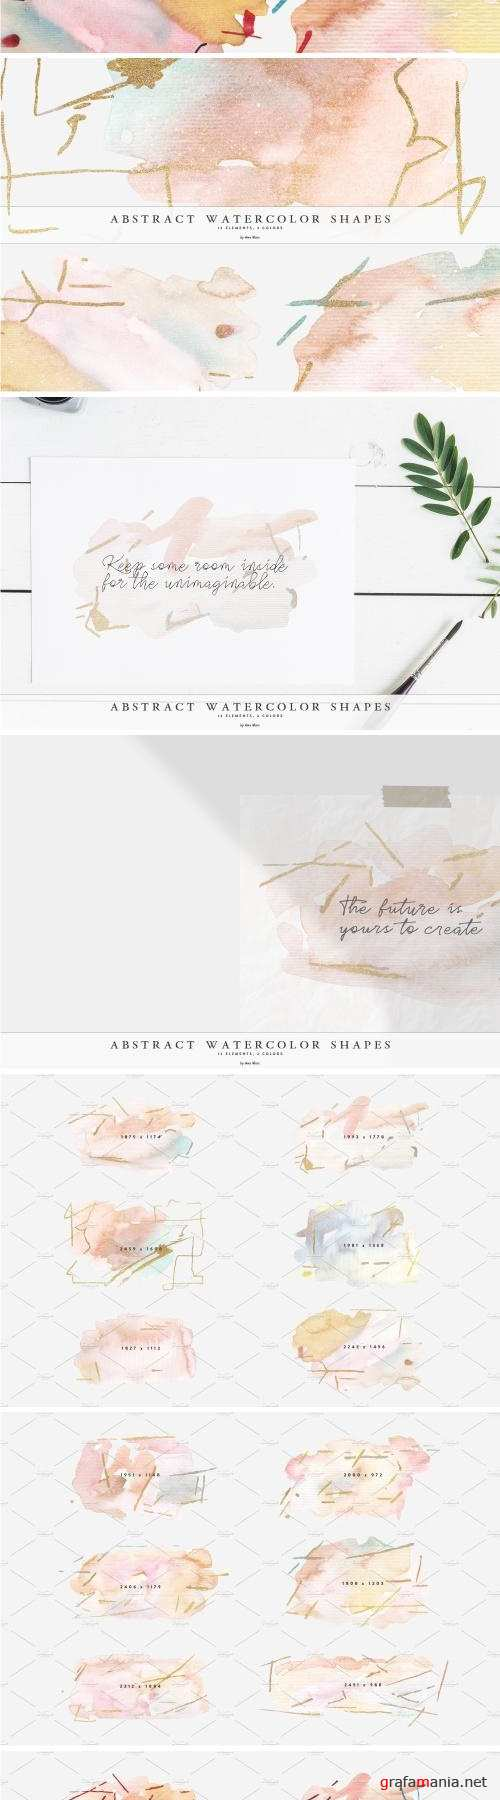 Abstract Watercolor Gold Shapes - 4060043